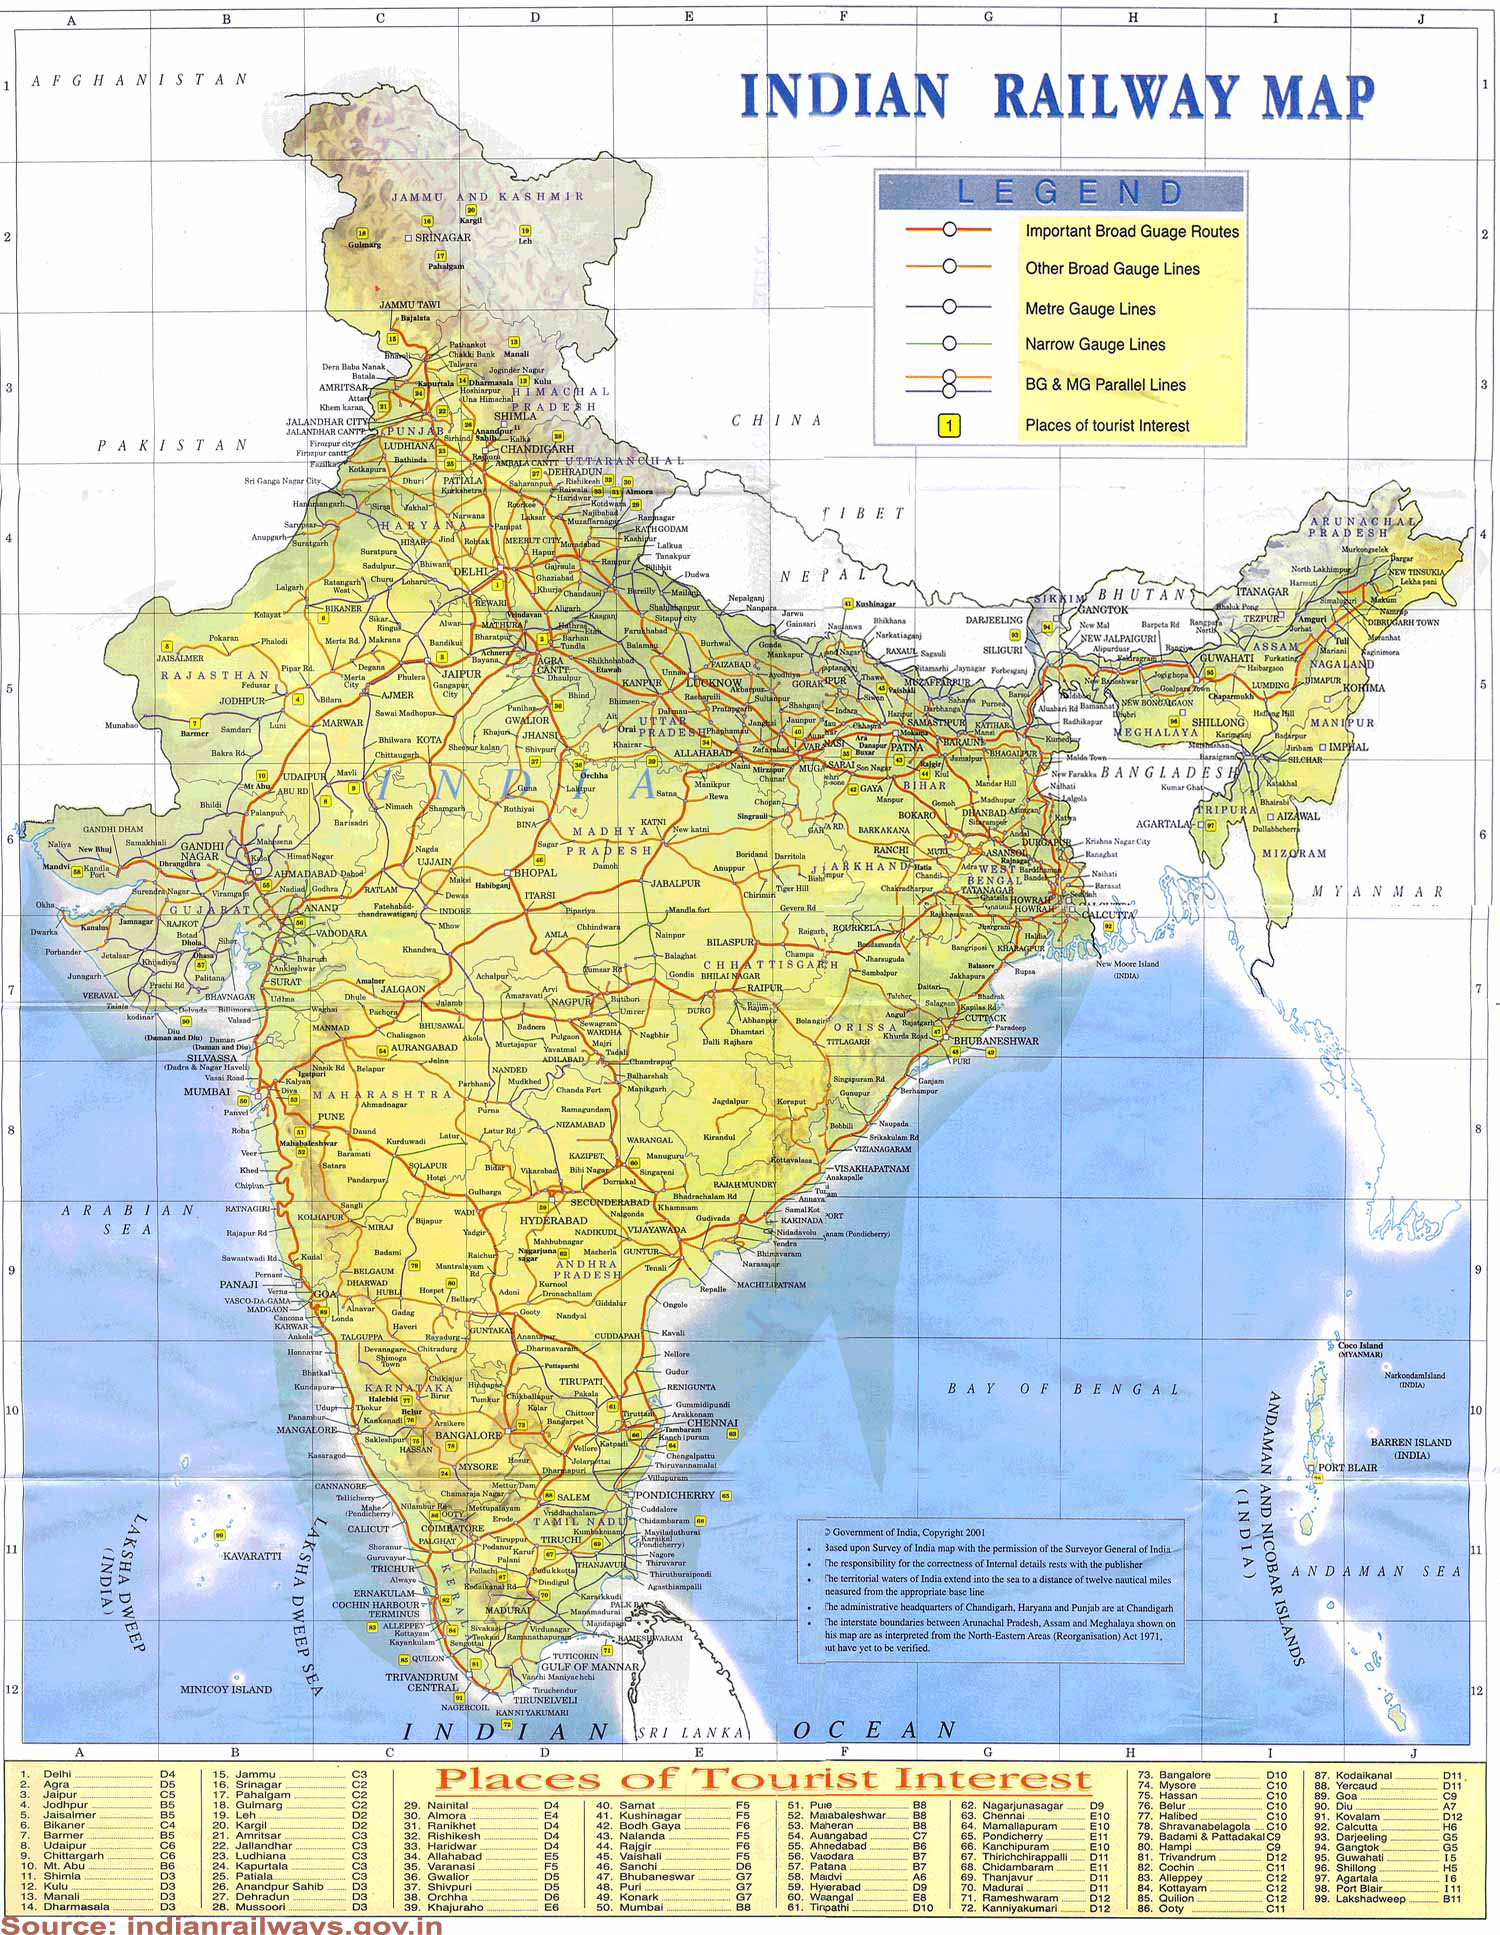 All India Railway network map